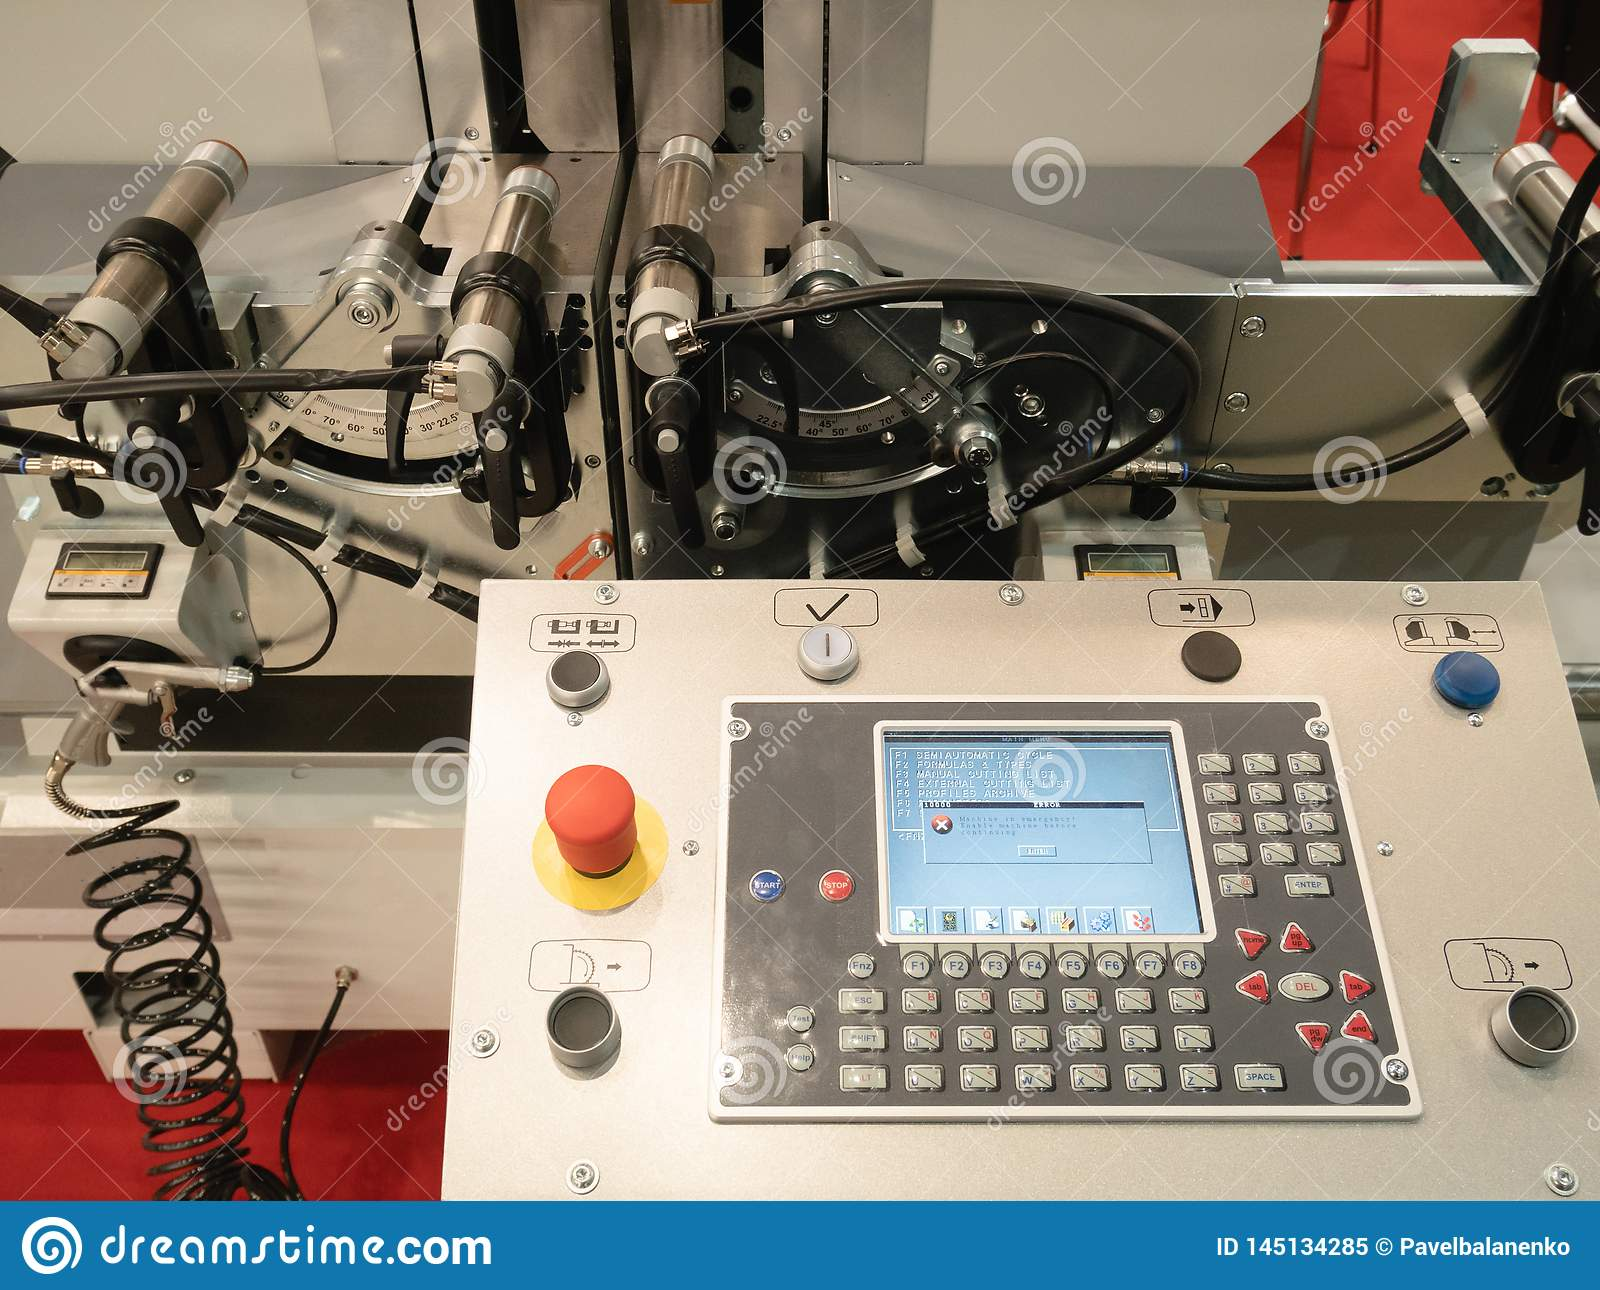 Programmable remote control CNC milling rolling machine with digital computer. industrial equipment at factory, plant, facility